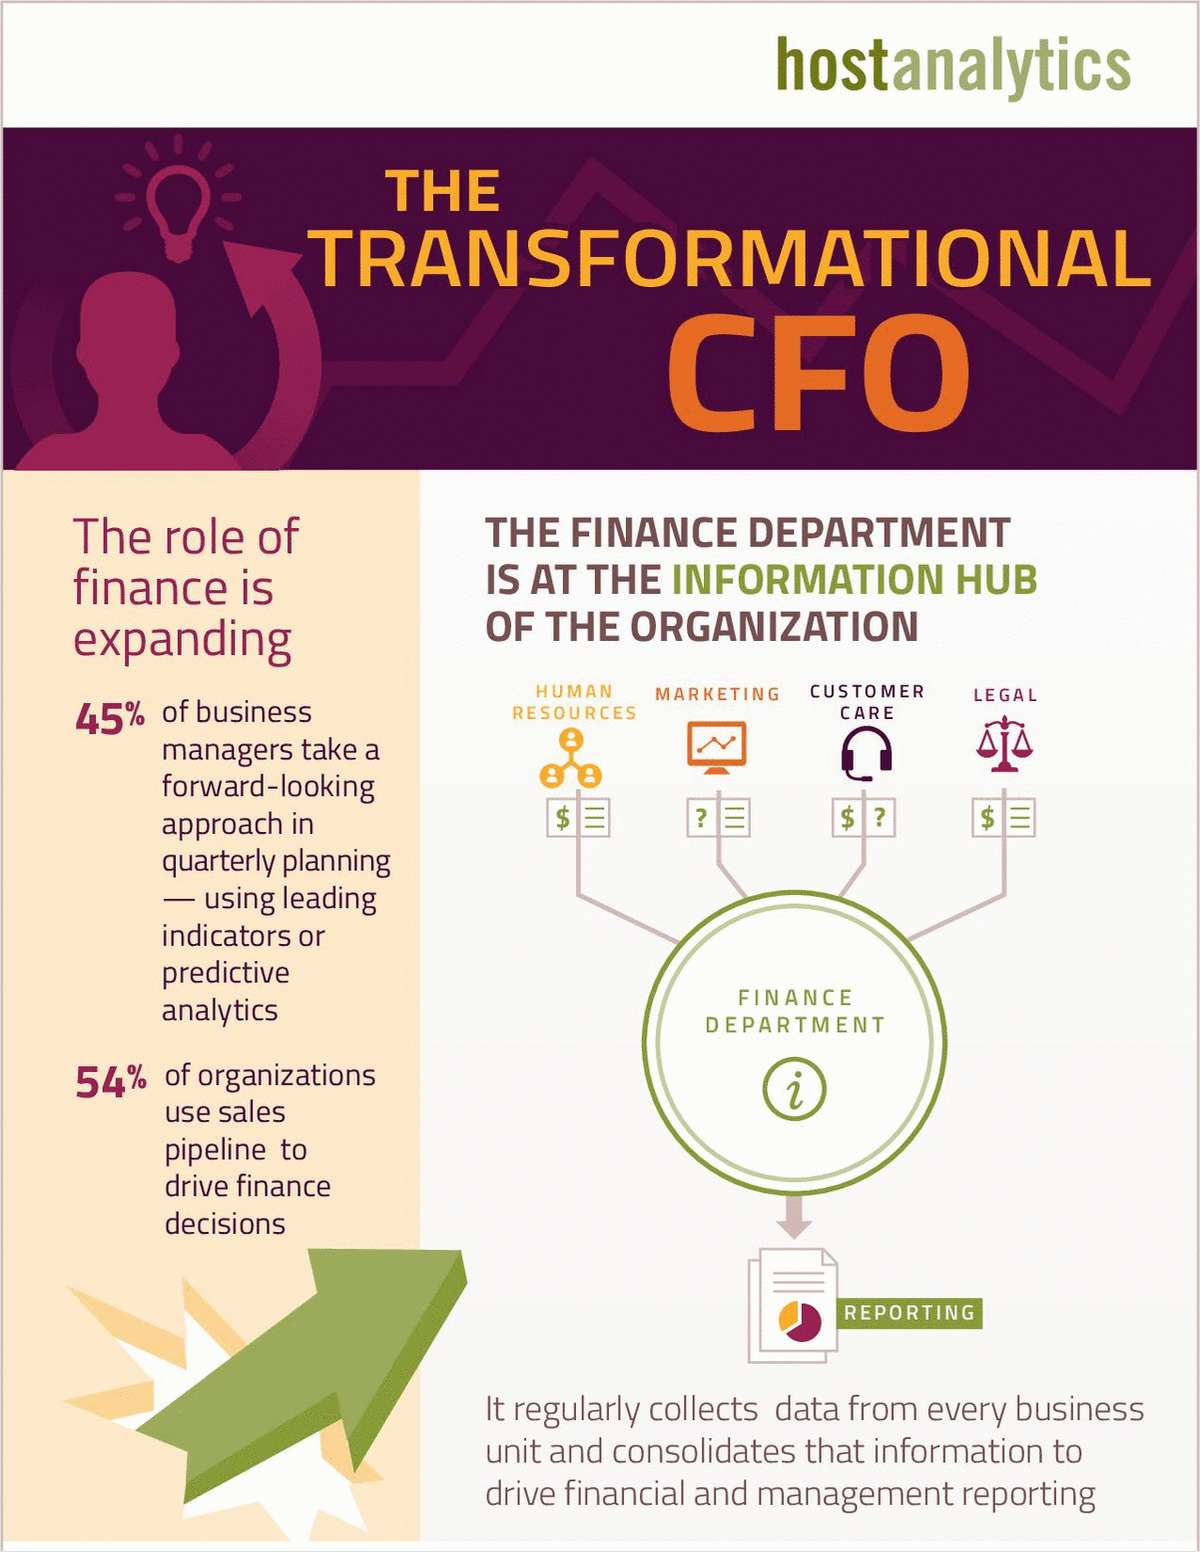 The Transformational CFO